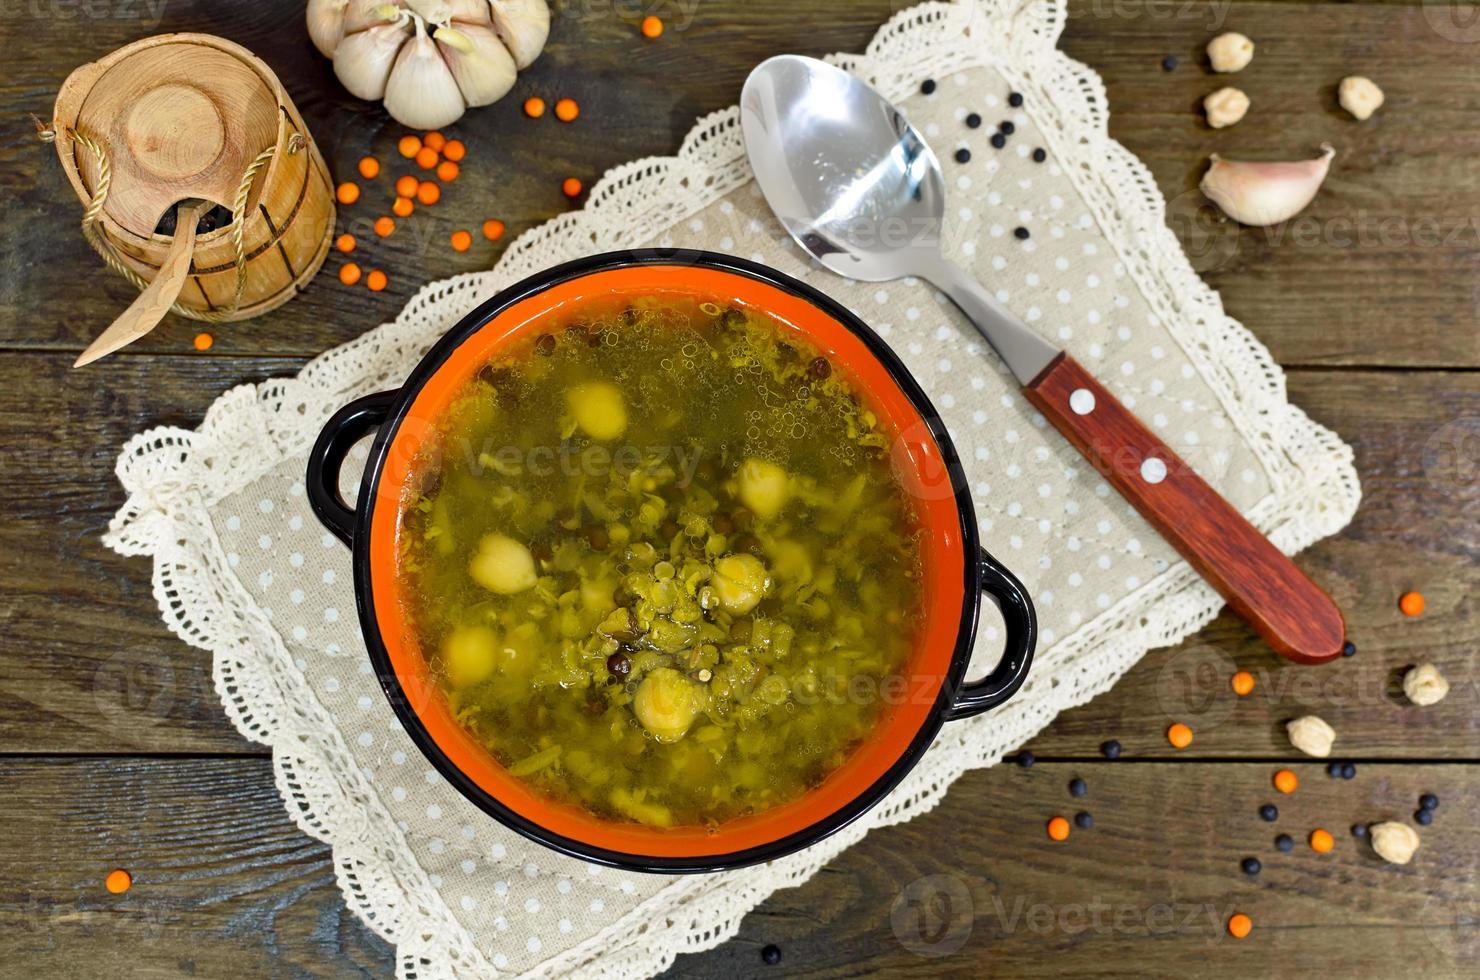 Chickpea and lentil soup photo